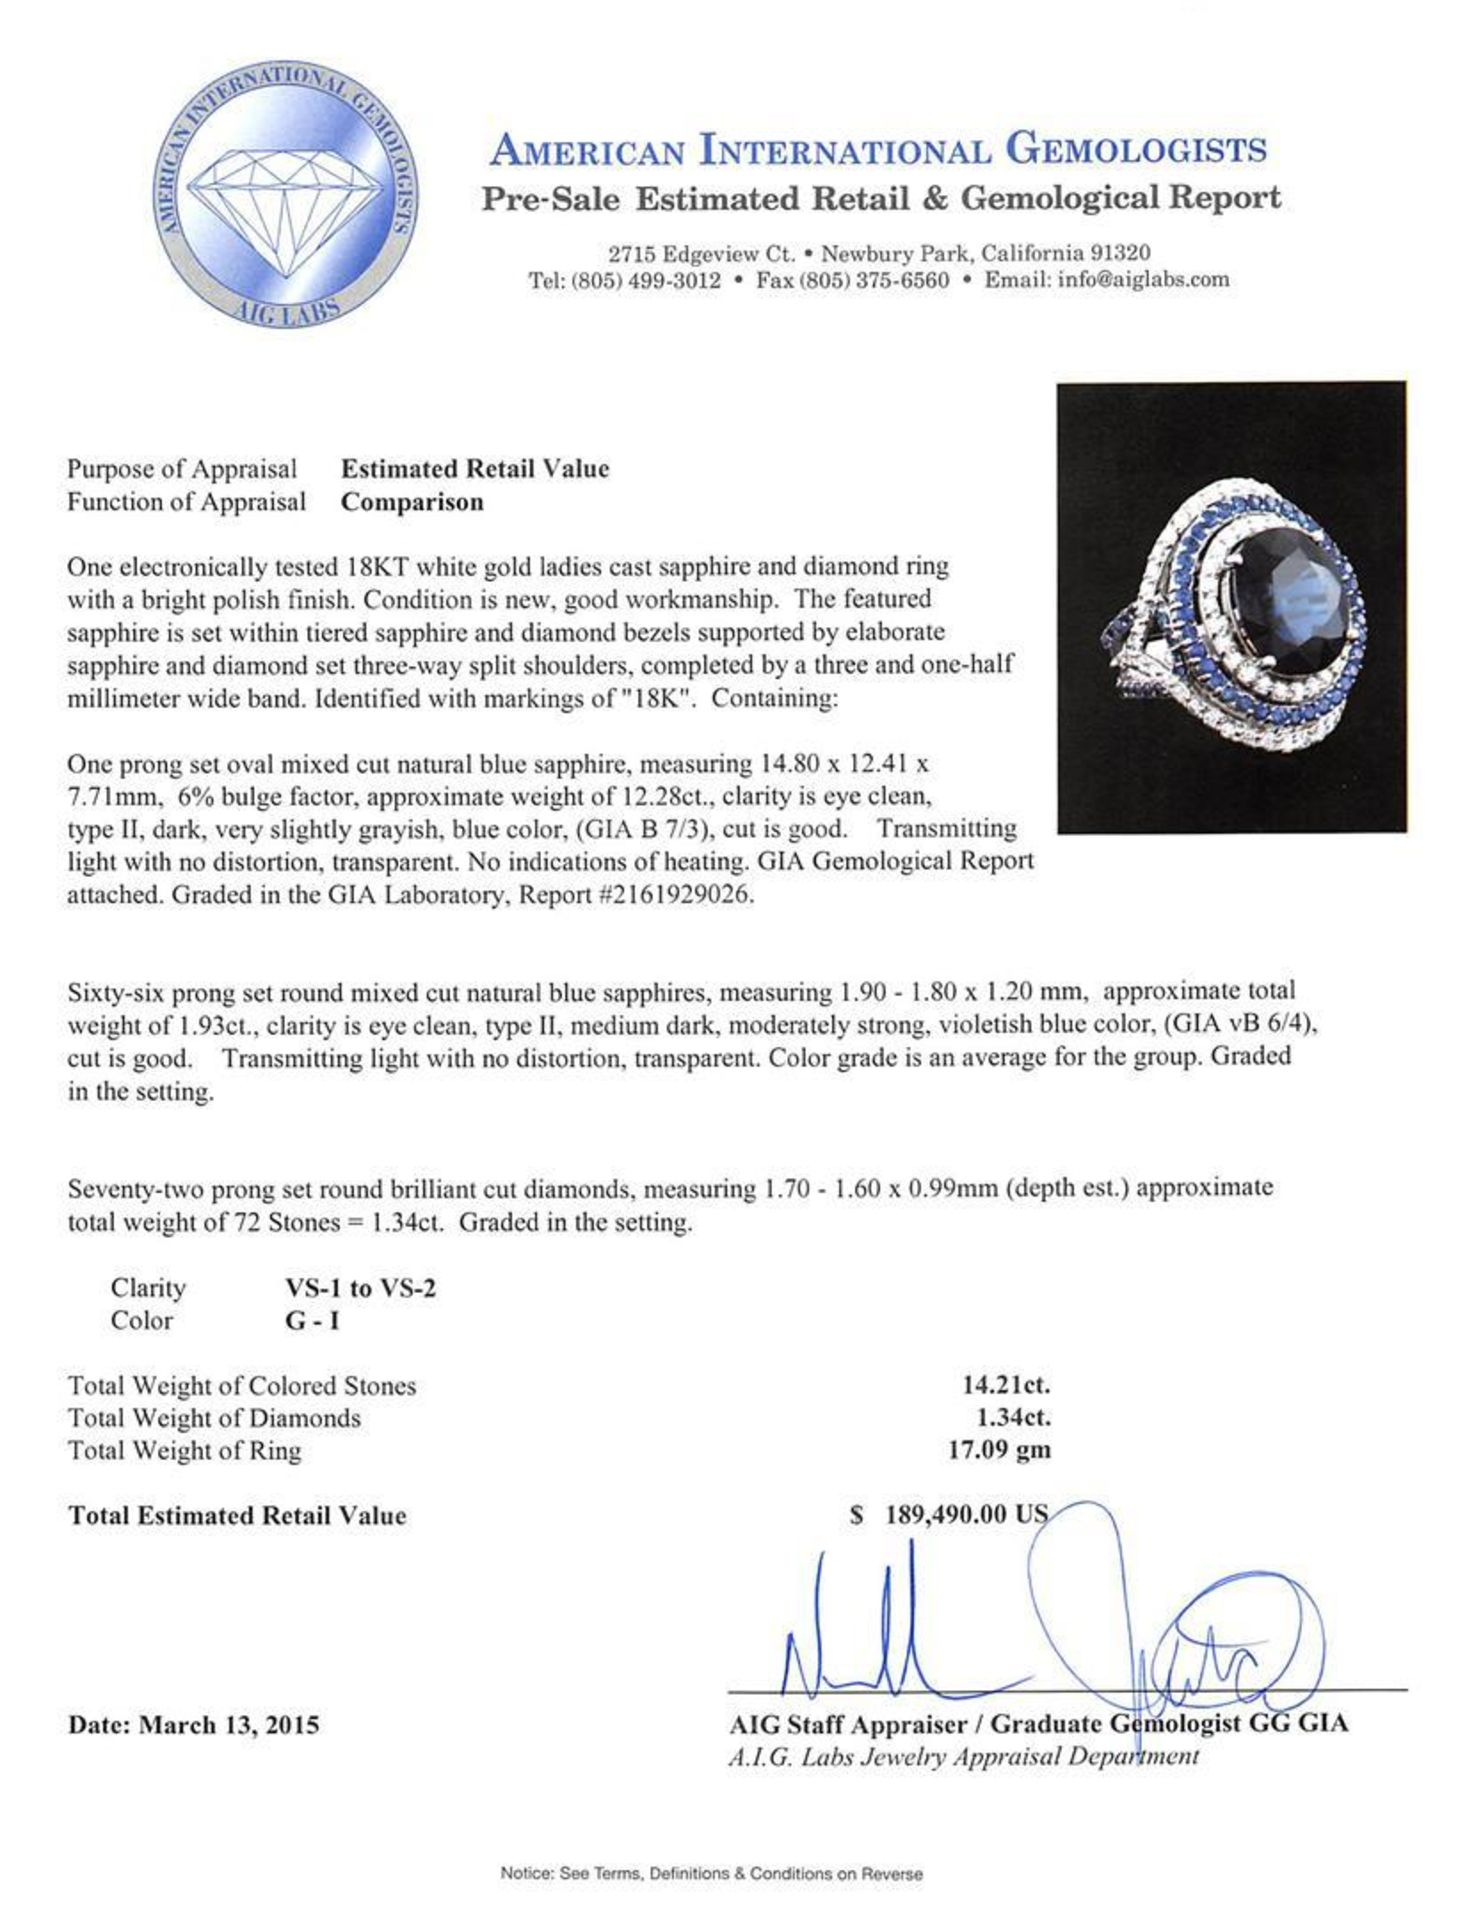 14.21 ctw Sapphire and Diamond Ring - 18KT White Gold GIA Certified - Image 4 of 5